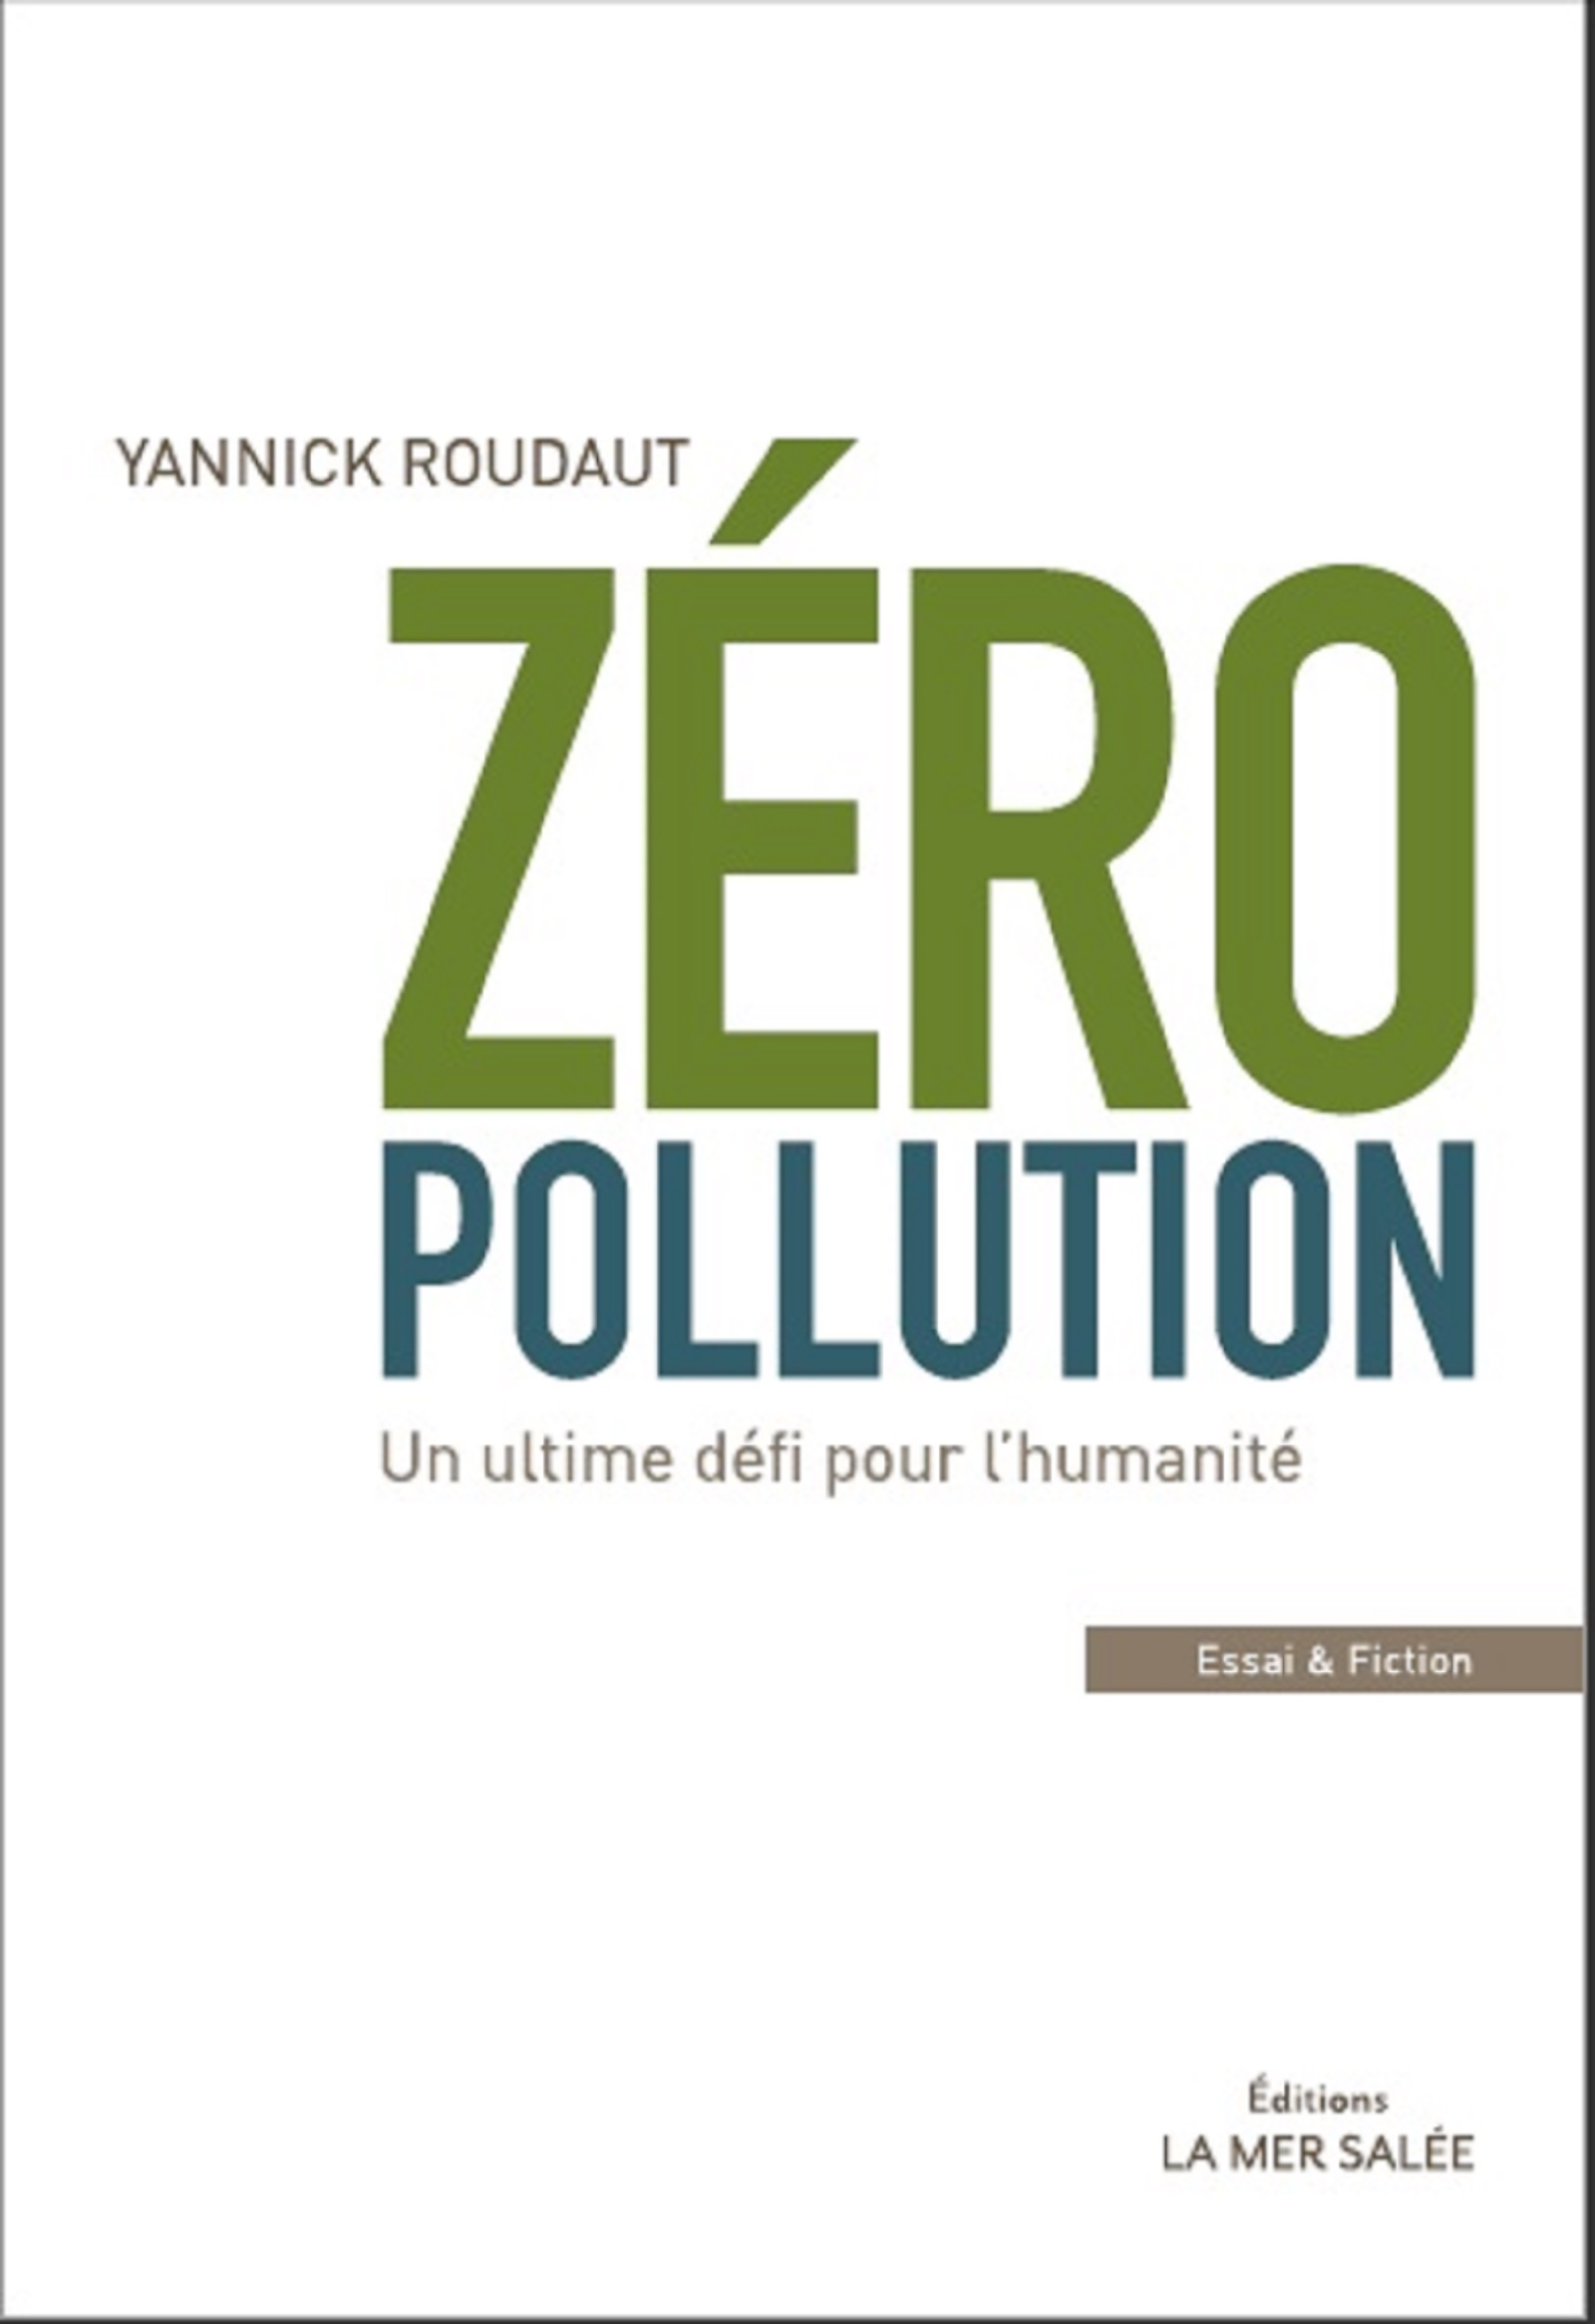 Zéro Pollution